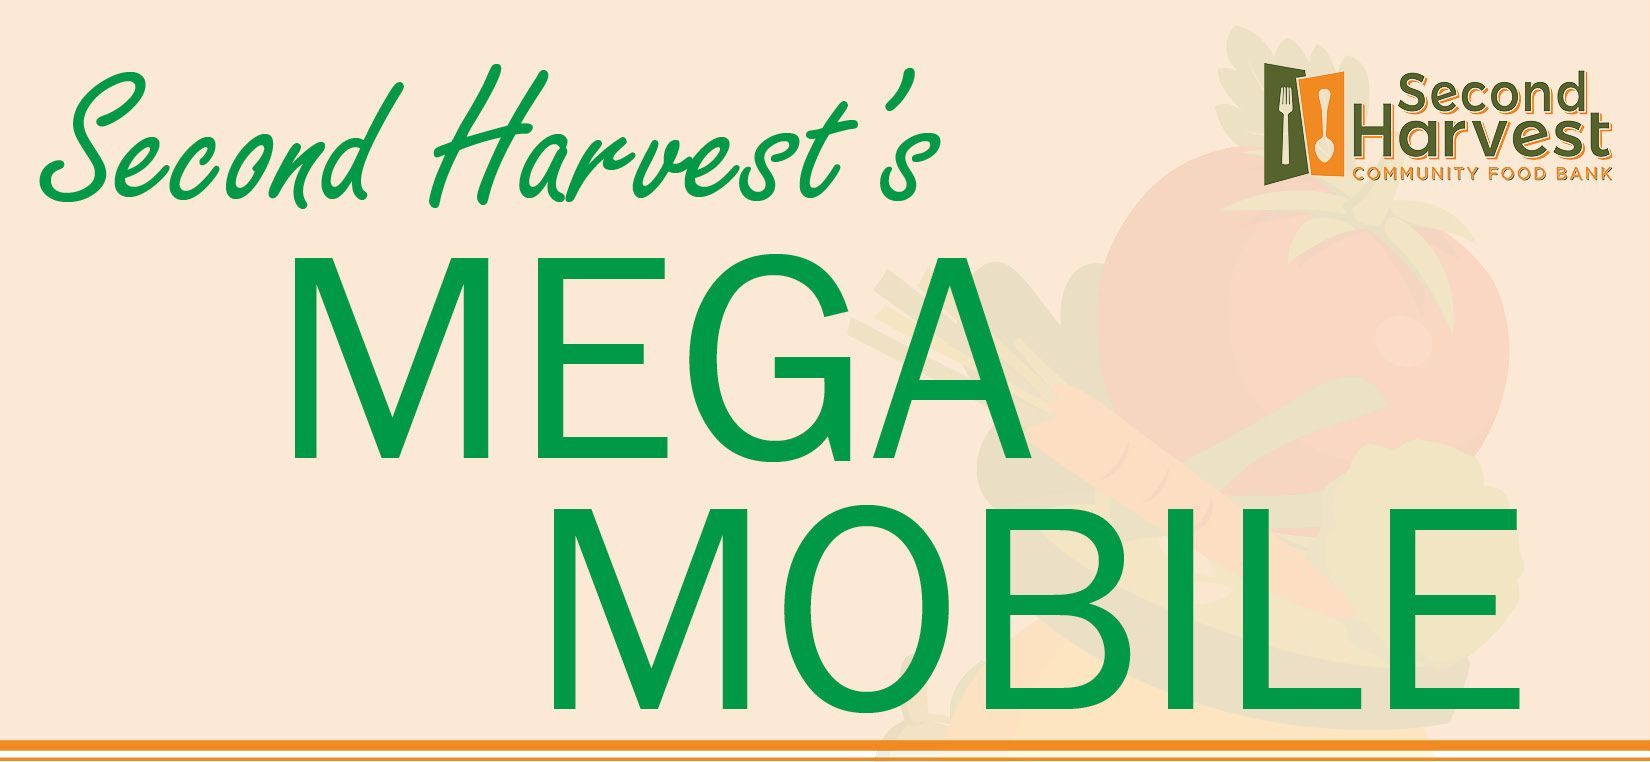 MEGA MOBILE: Second Harvest